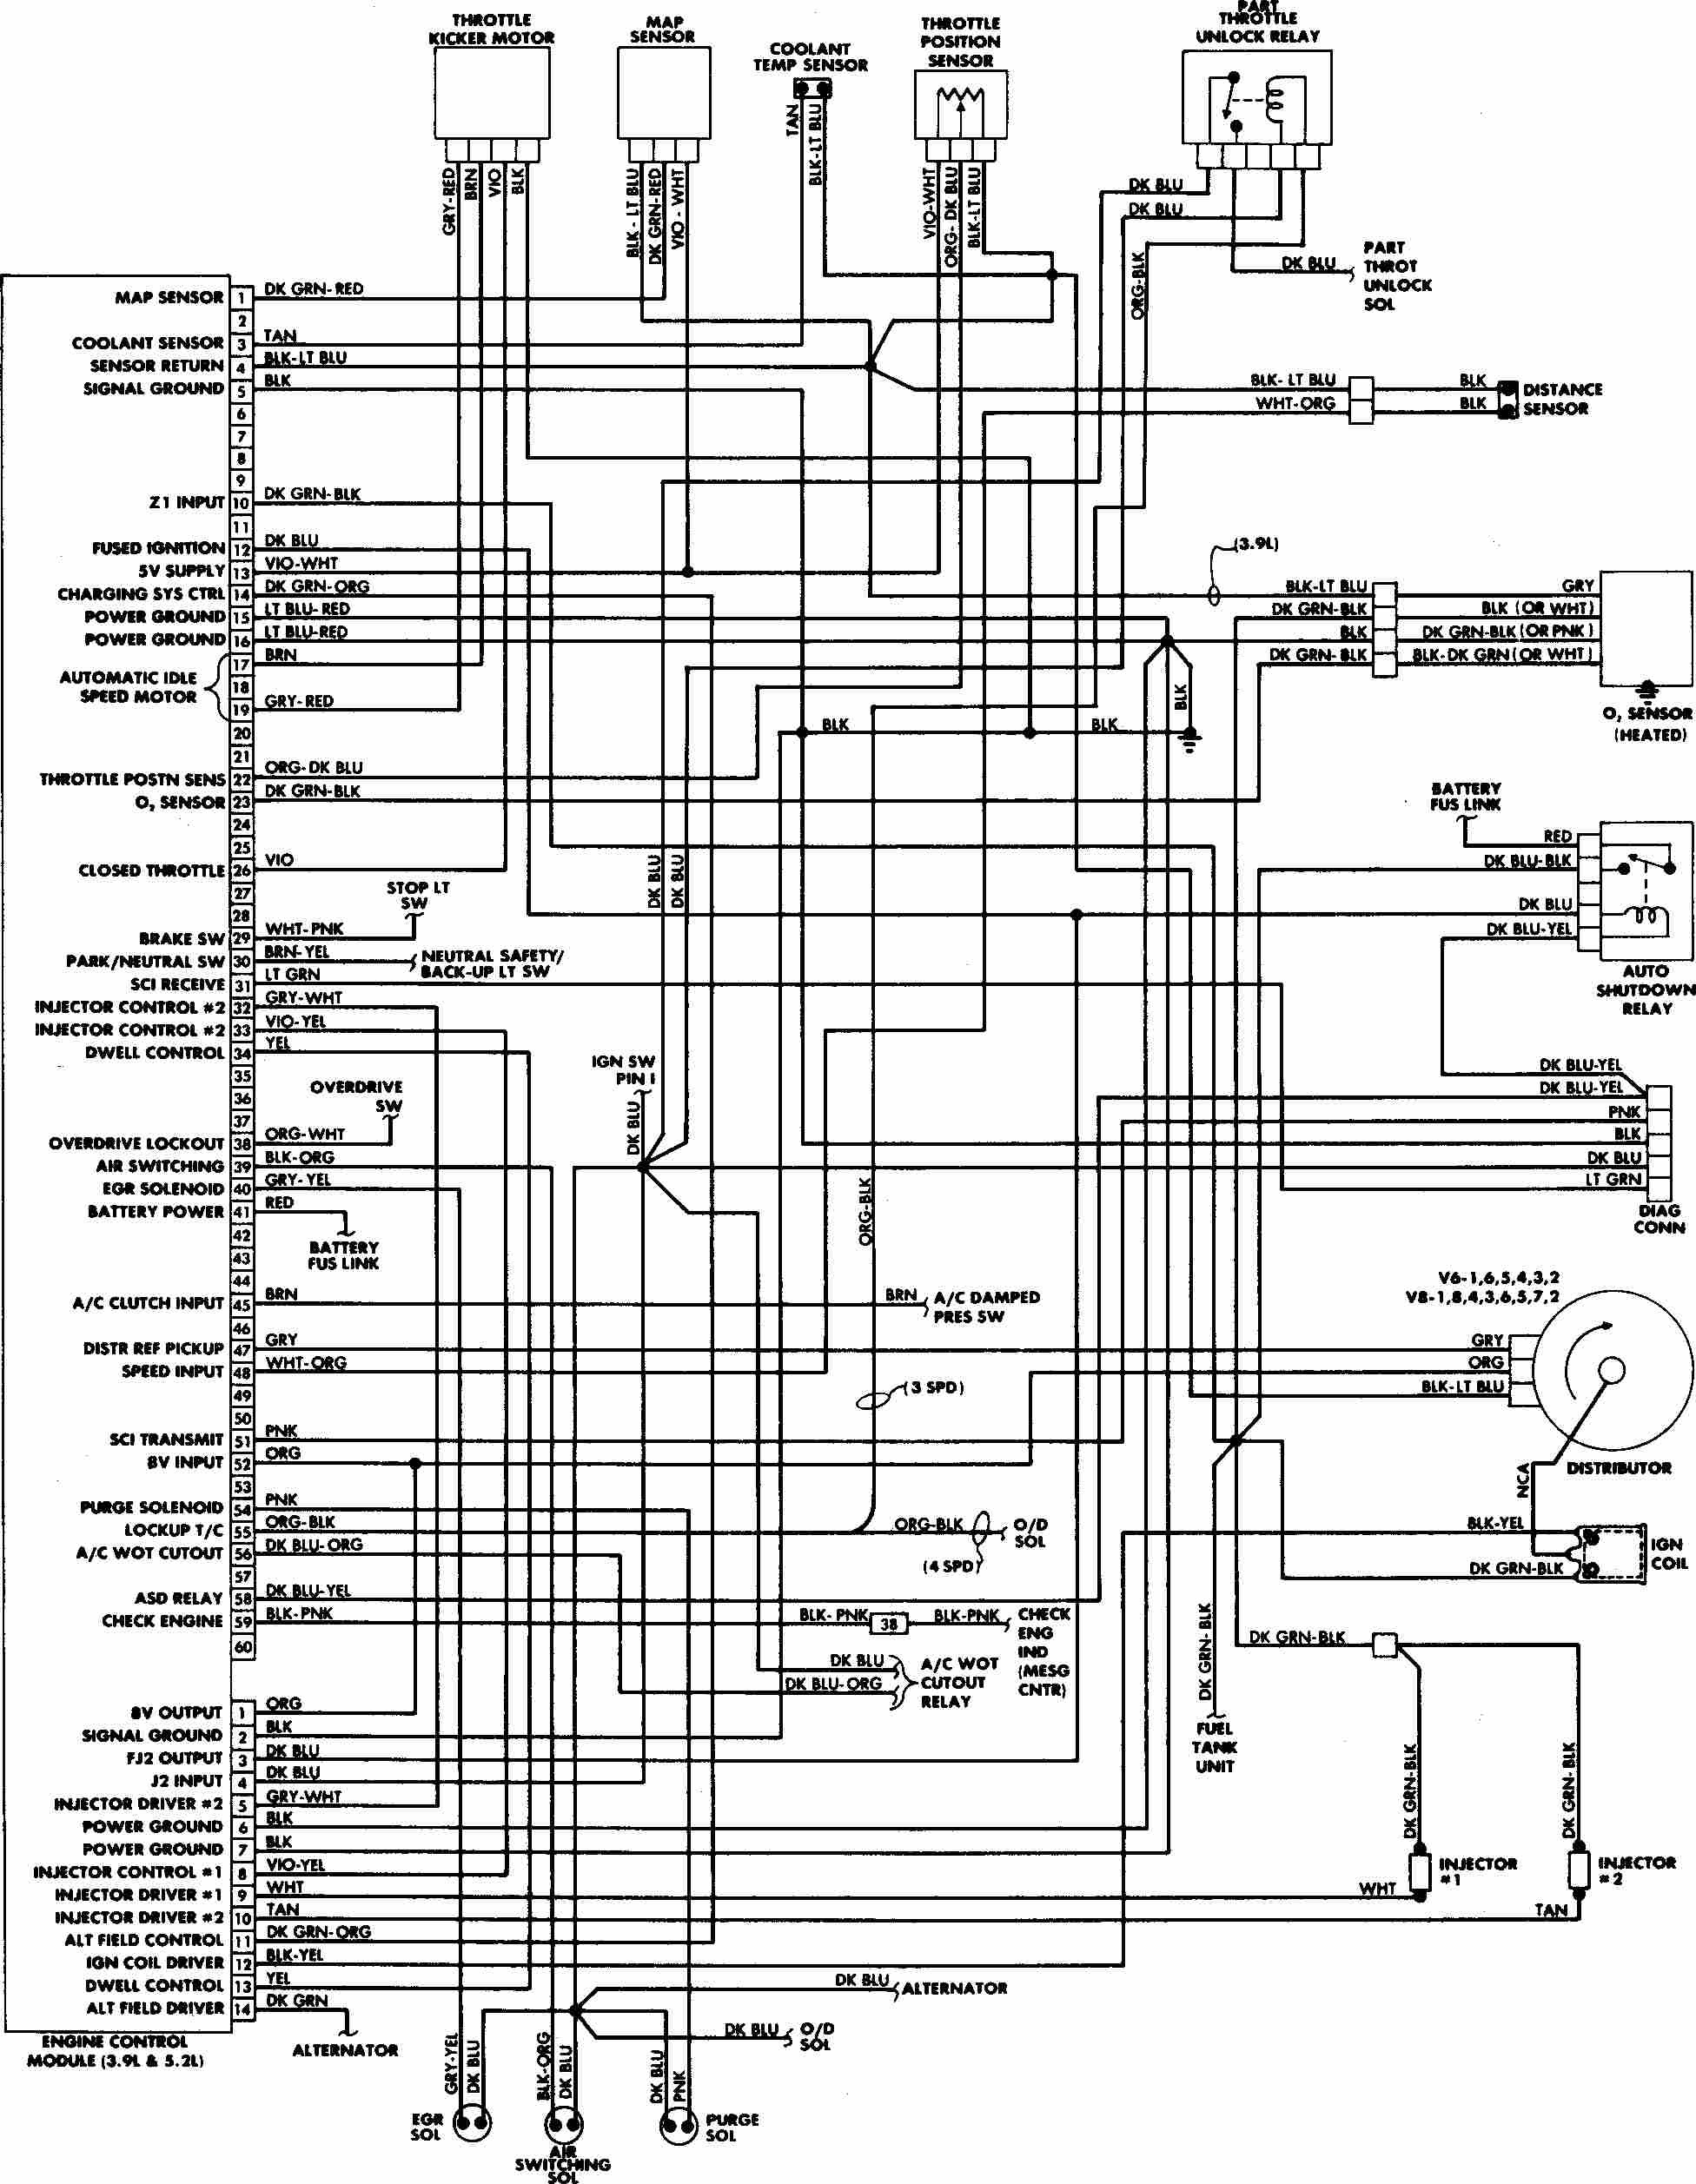 hight resolution of 2003 dodge ram 1500 engine diagram 2003 dodge durango emissions diagram free download wiring diagram of